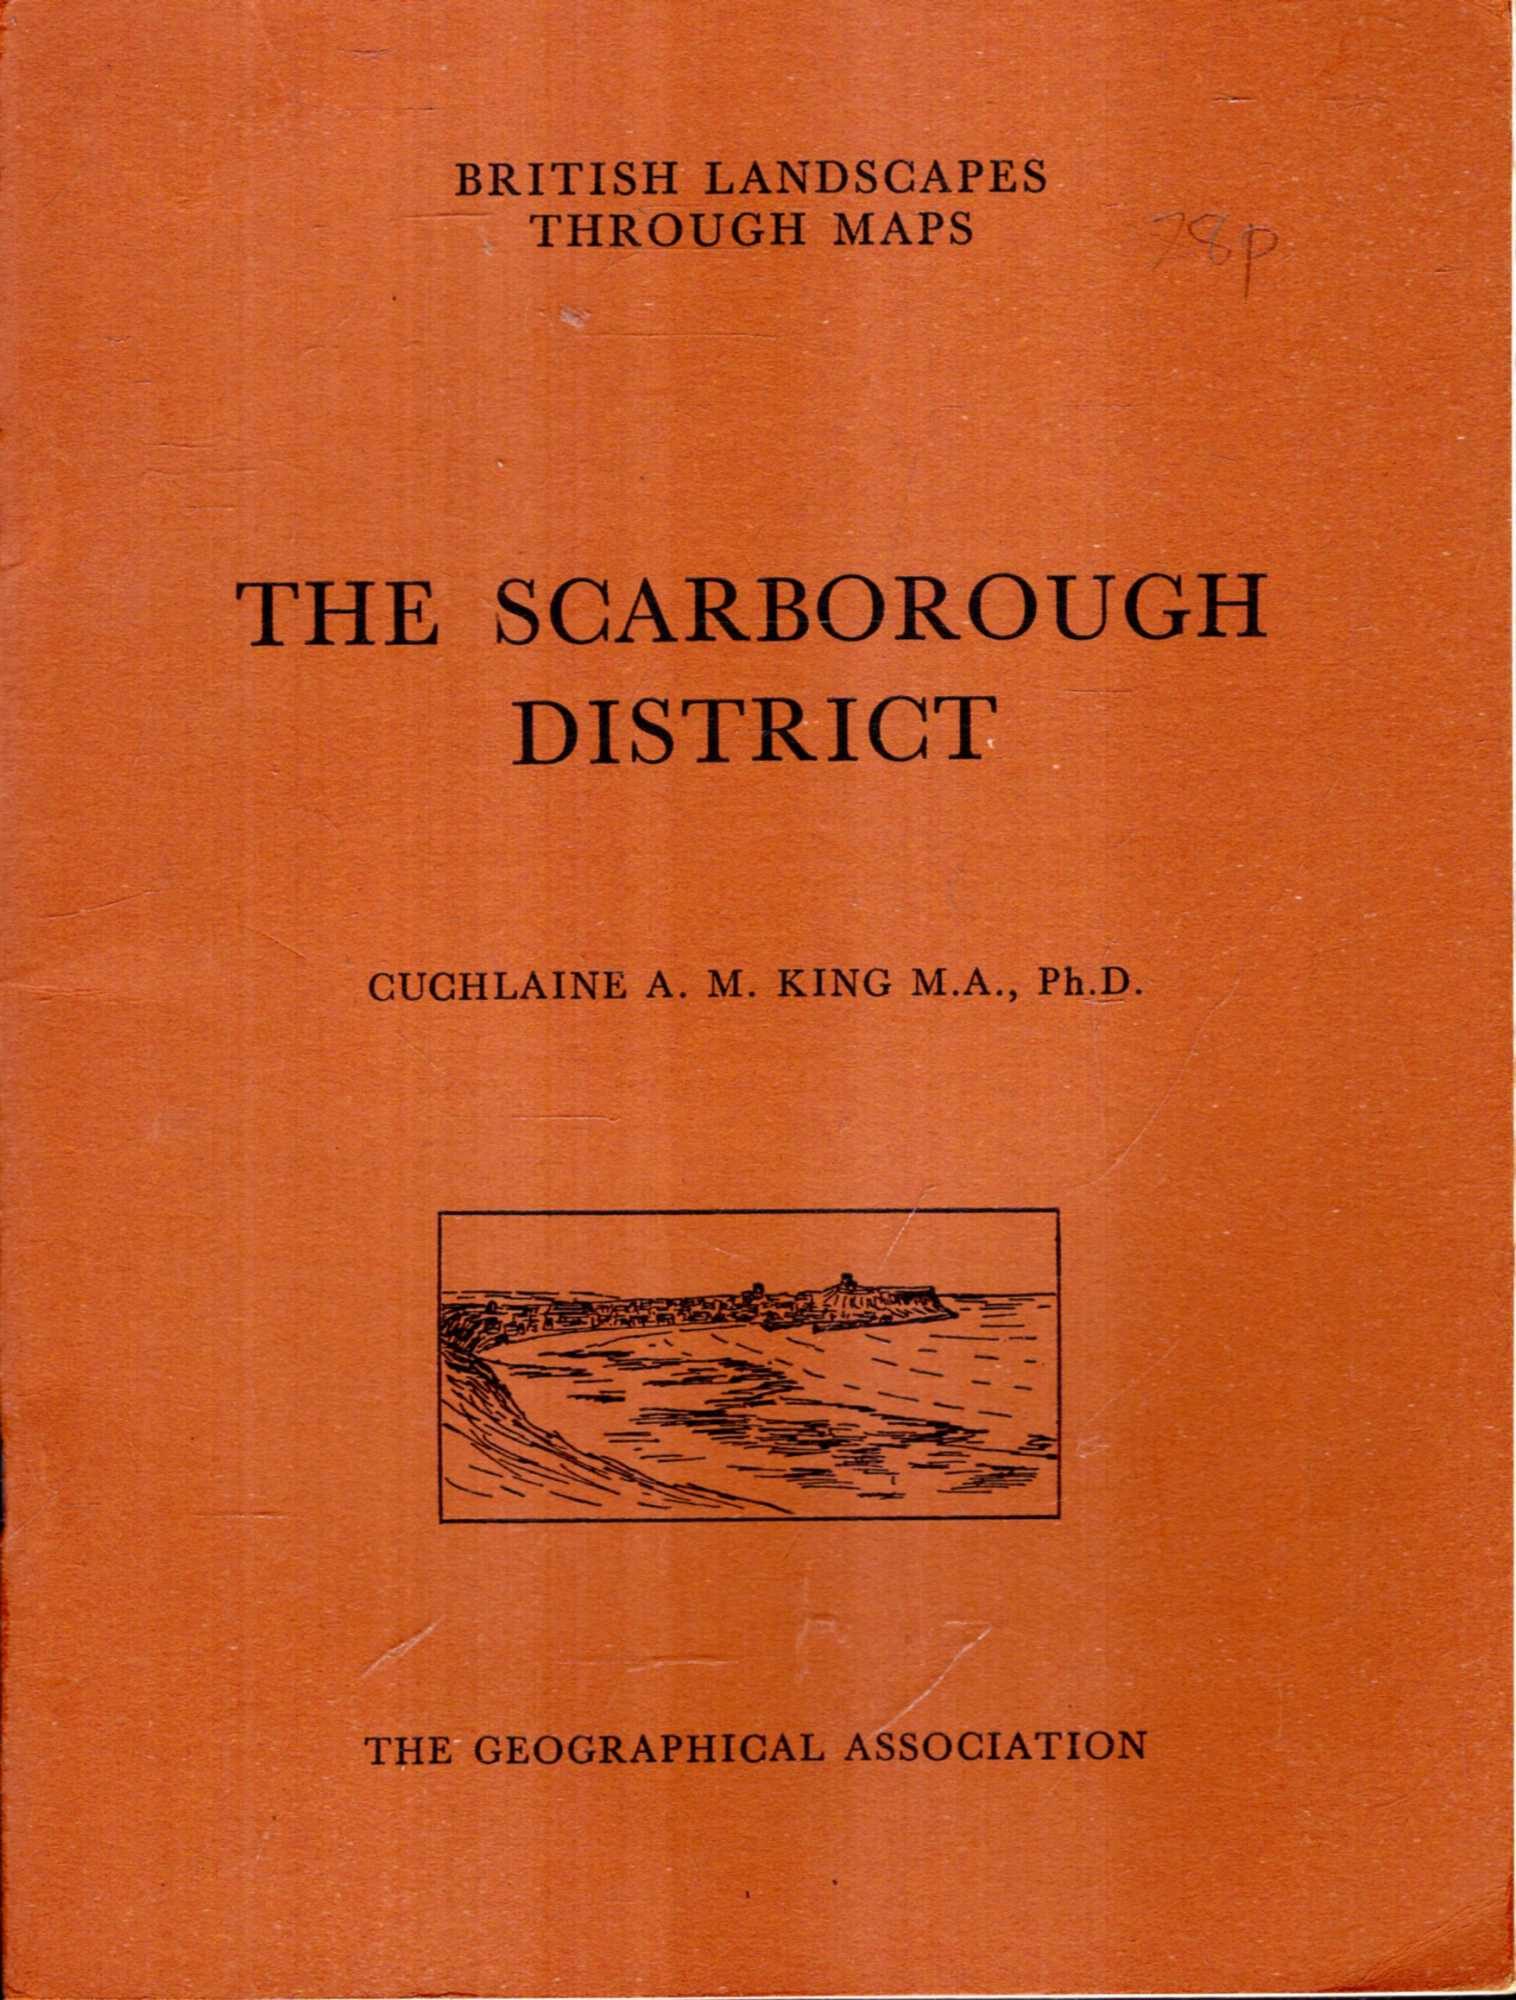 Image for British Landscapes Through Maps 7 : The Scarborough District, a description of the O.S. One-inch Sheet 93 : Scarborough